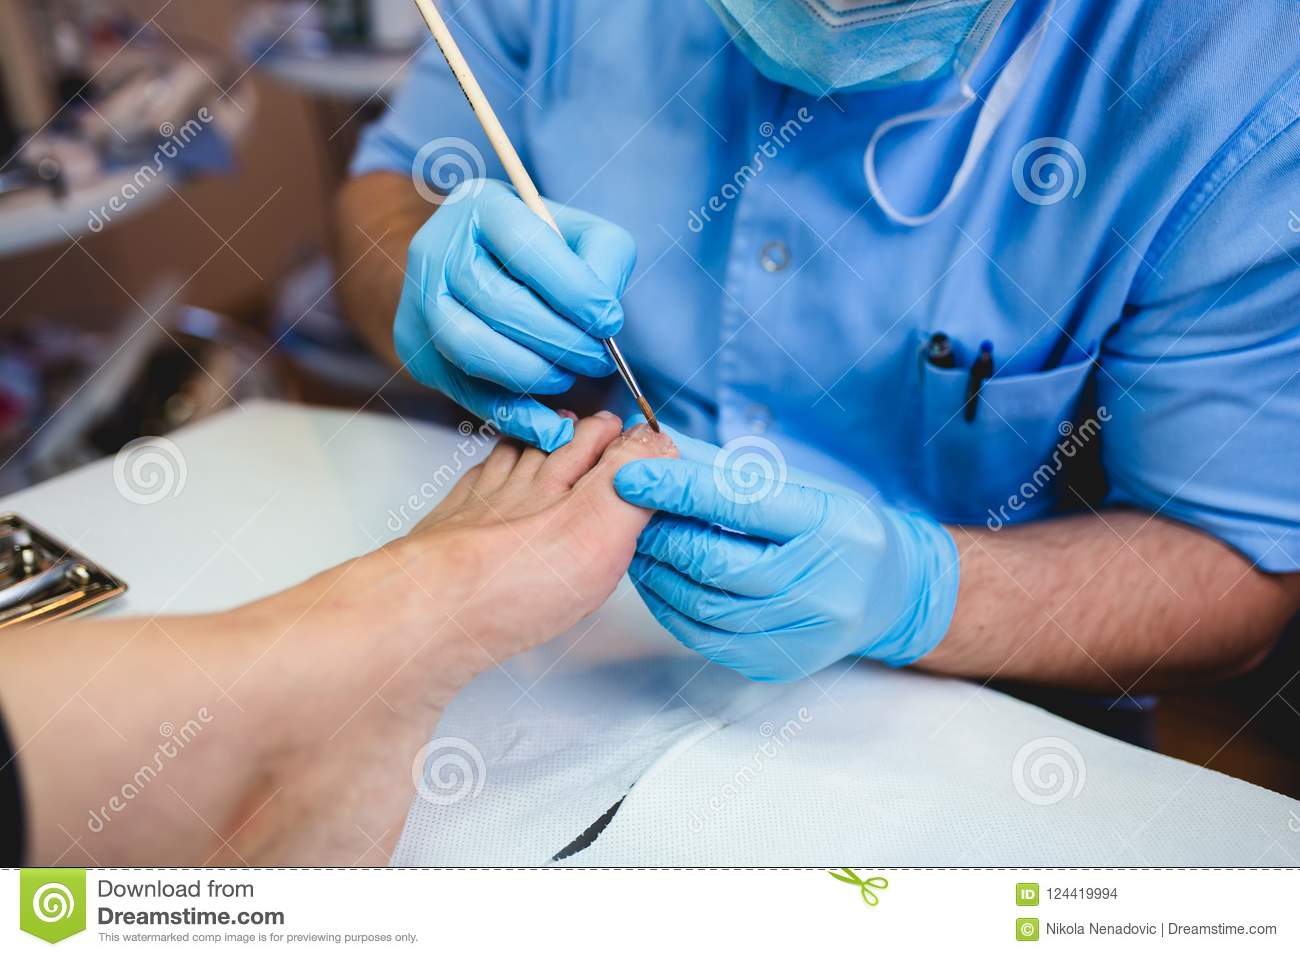 Medical toenail treatment stock photo. Image of dermatology - 124419994